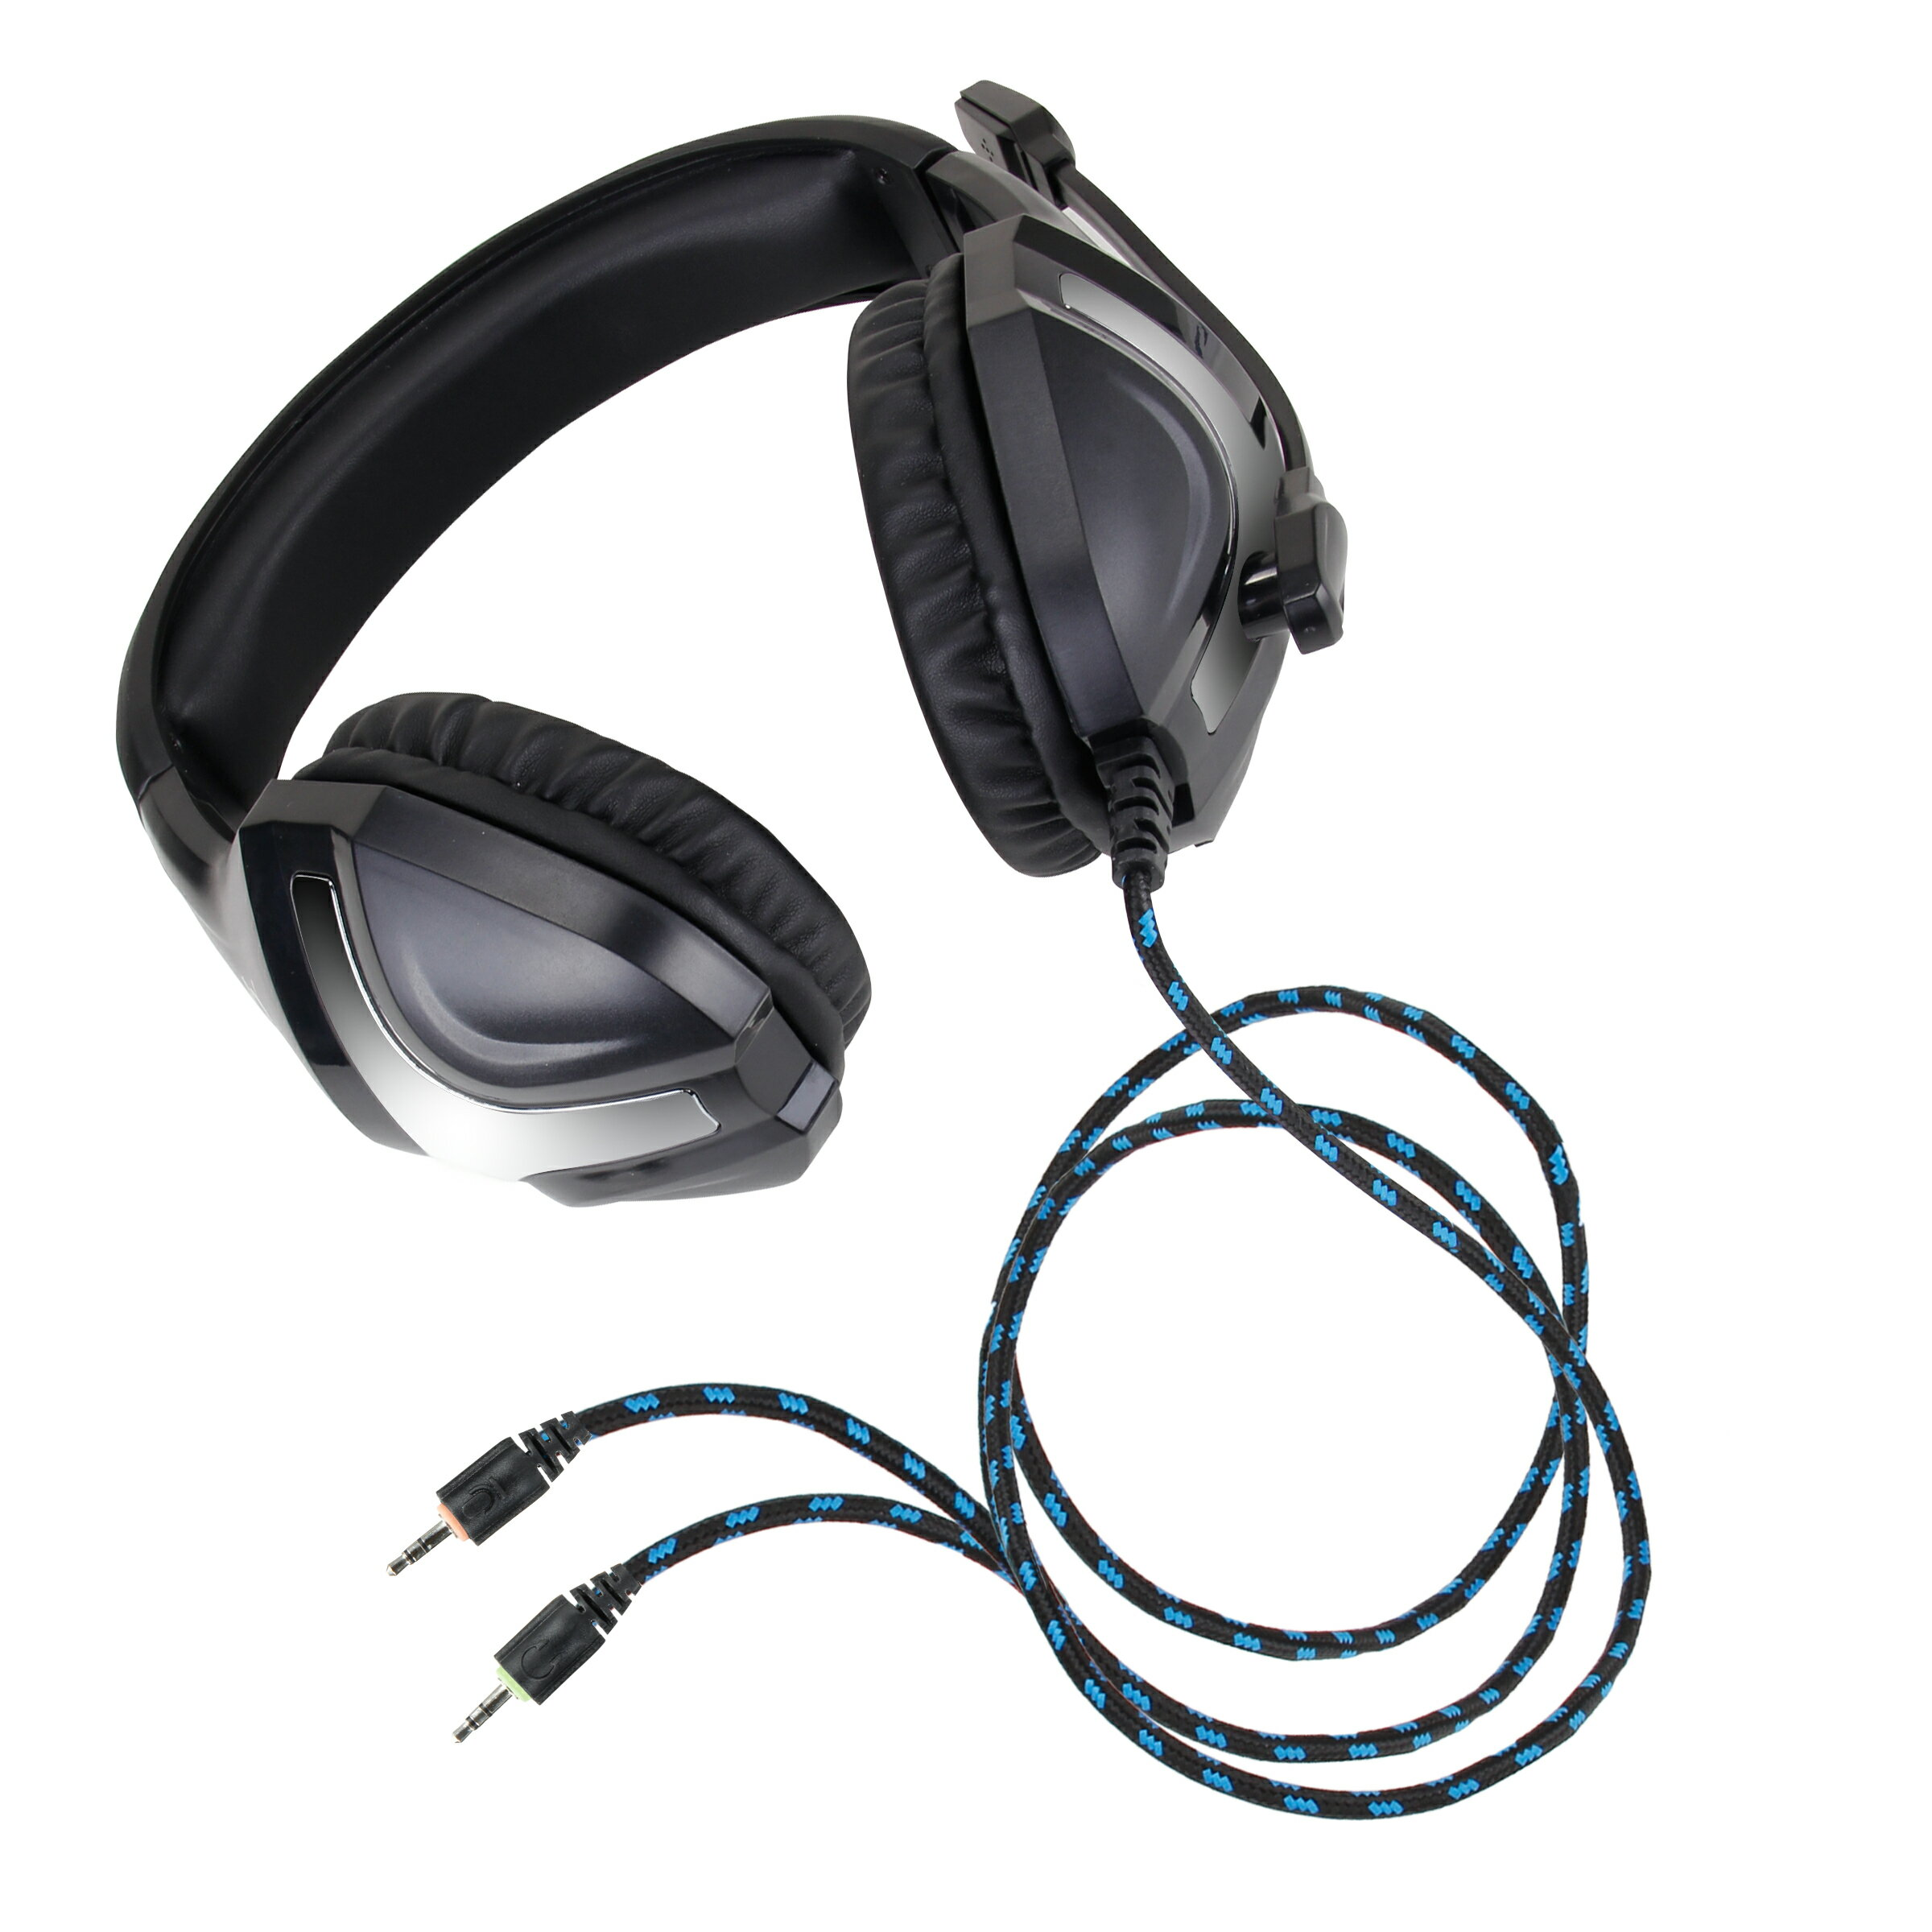 ENHANCE GX-H4 Stereo Gaming Headset with Adjustable Microphone &  Noise-Isolating Earphones 6